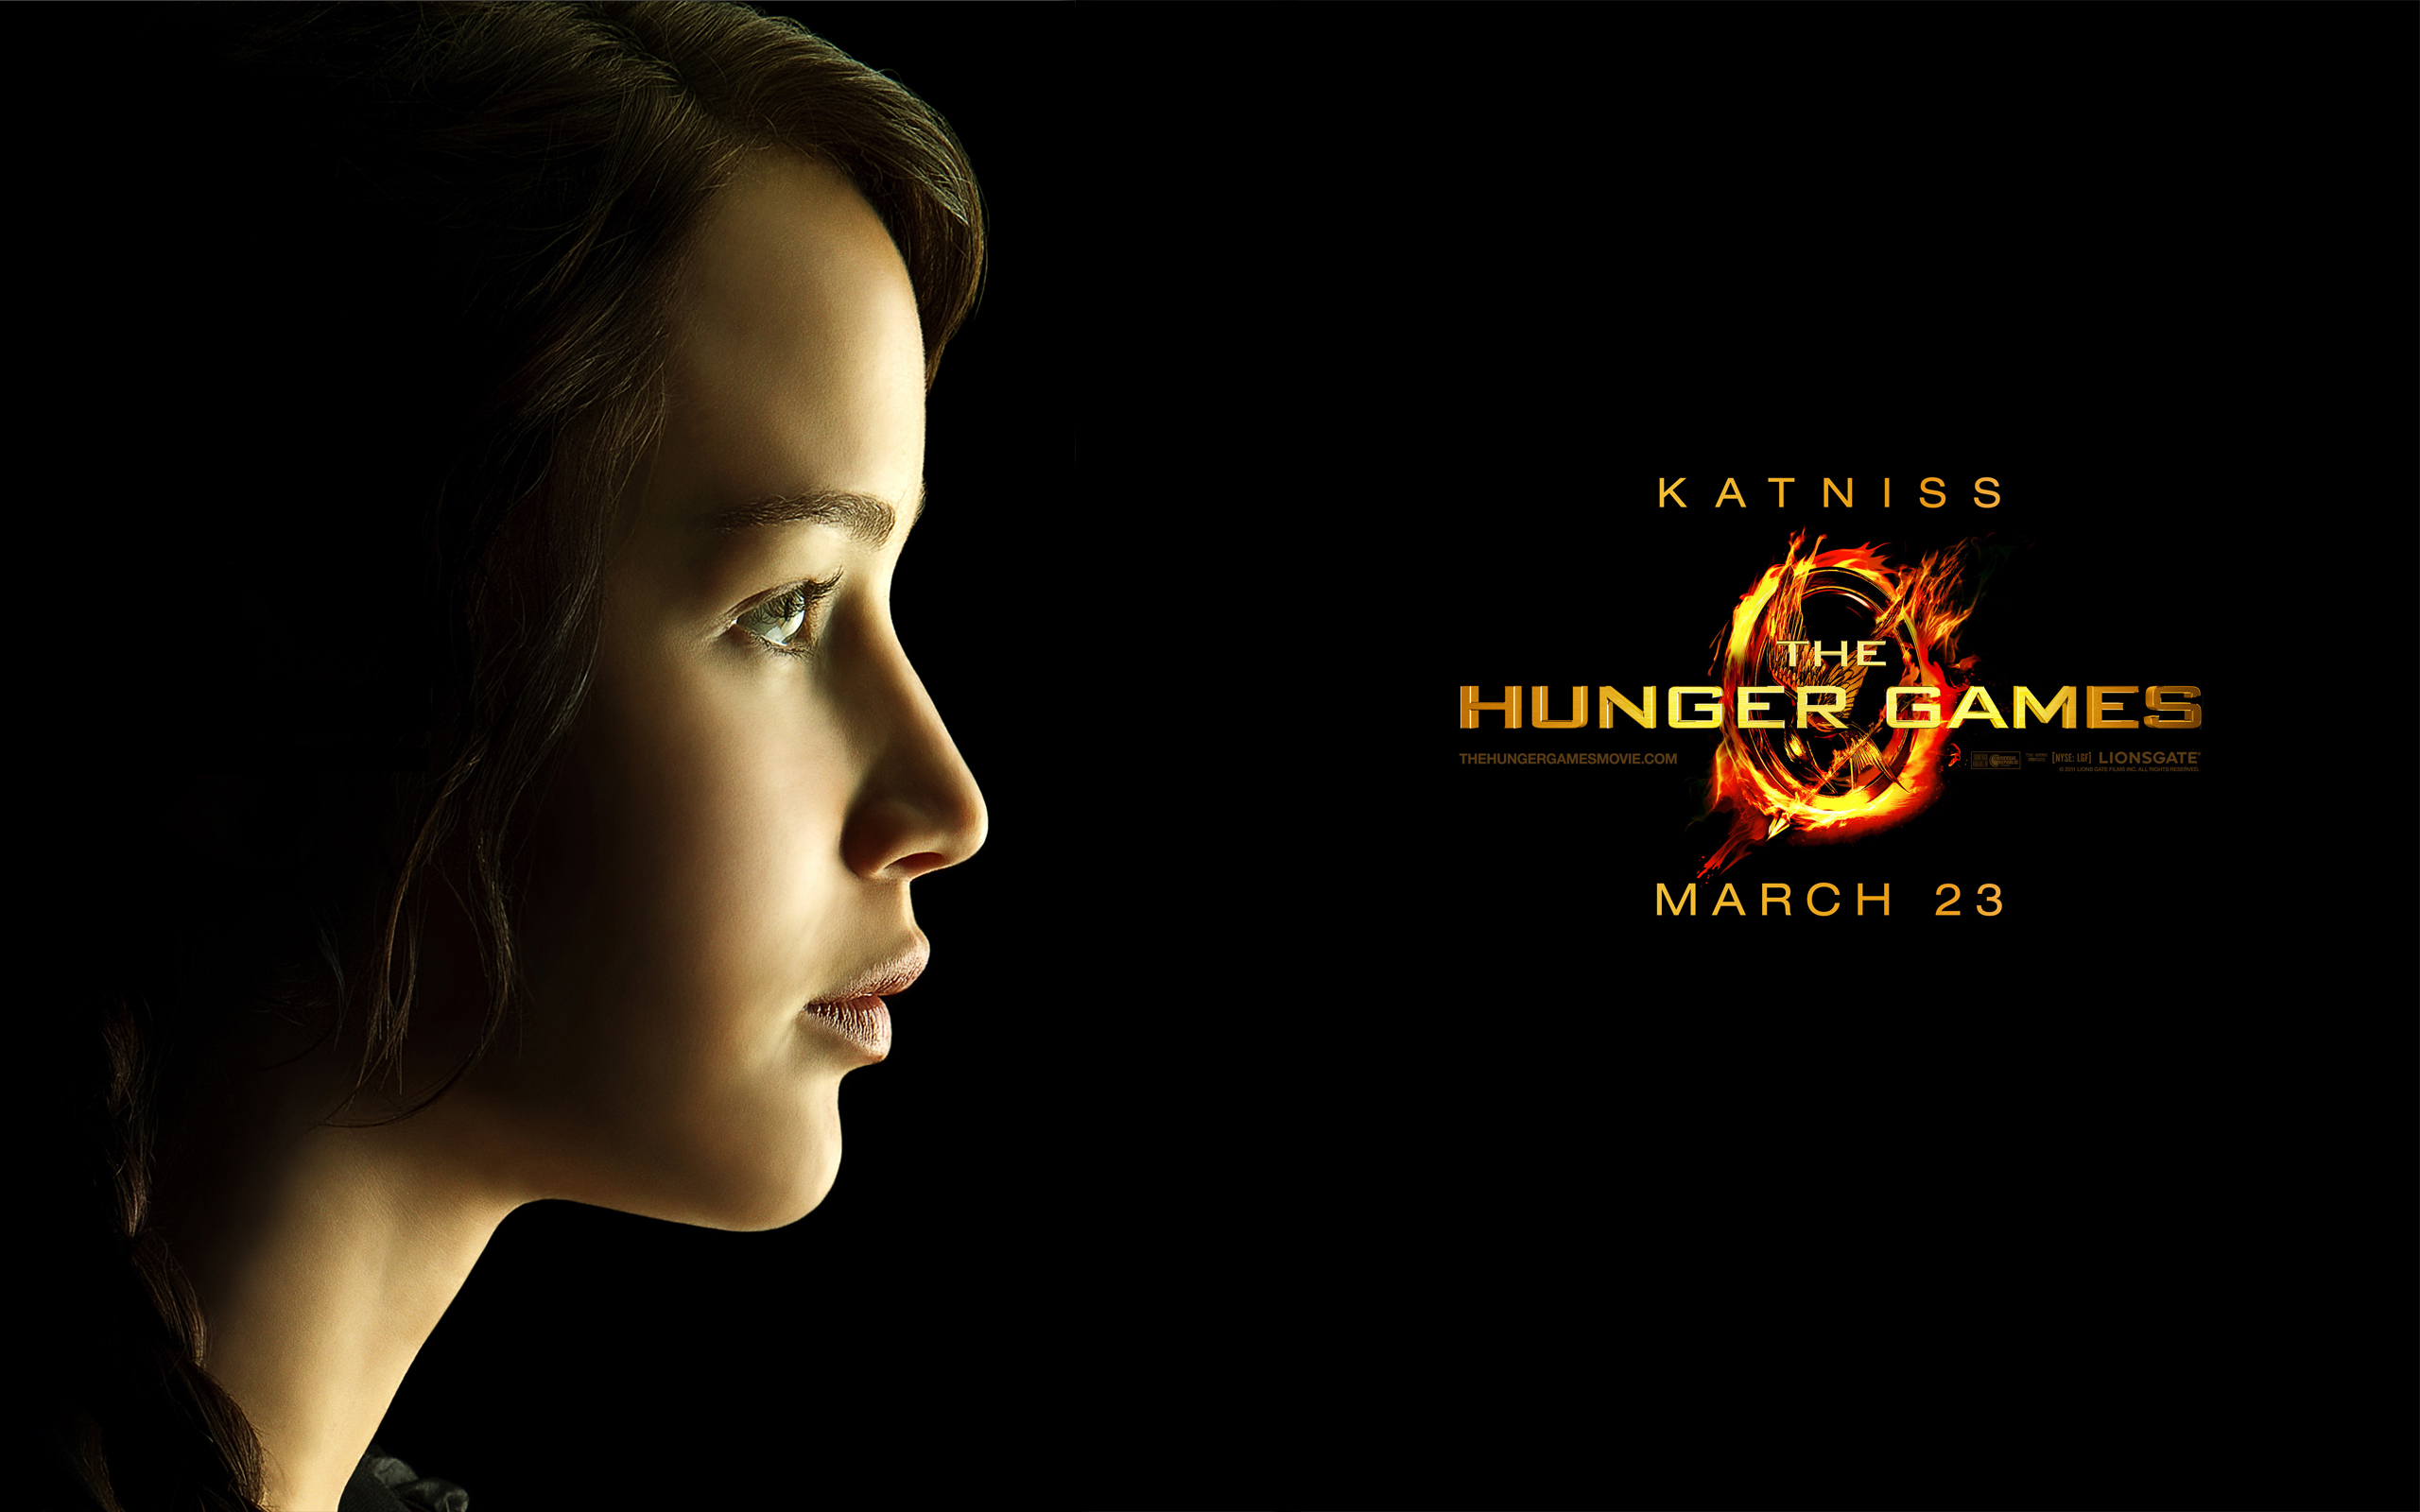 Exclusive The Hunger Games HQ Wallpapers Movie Wallpapers 2560x1600